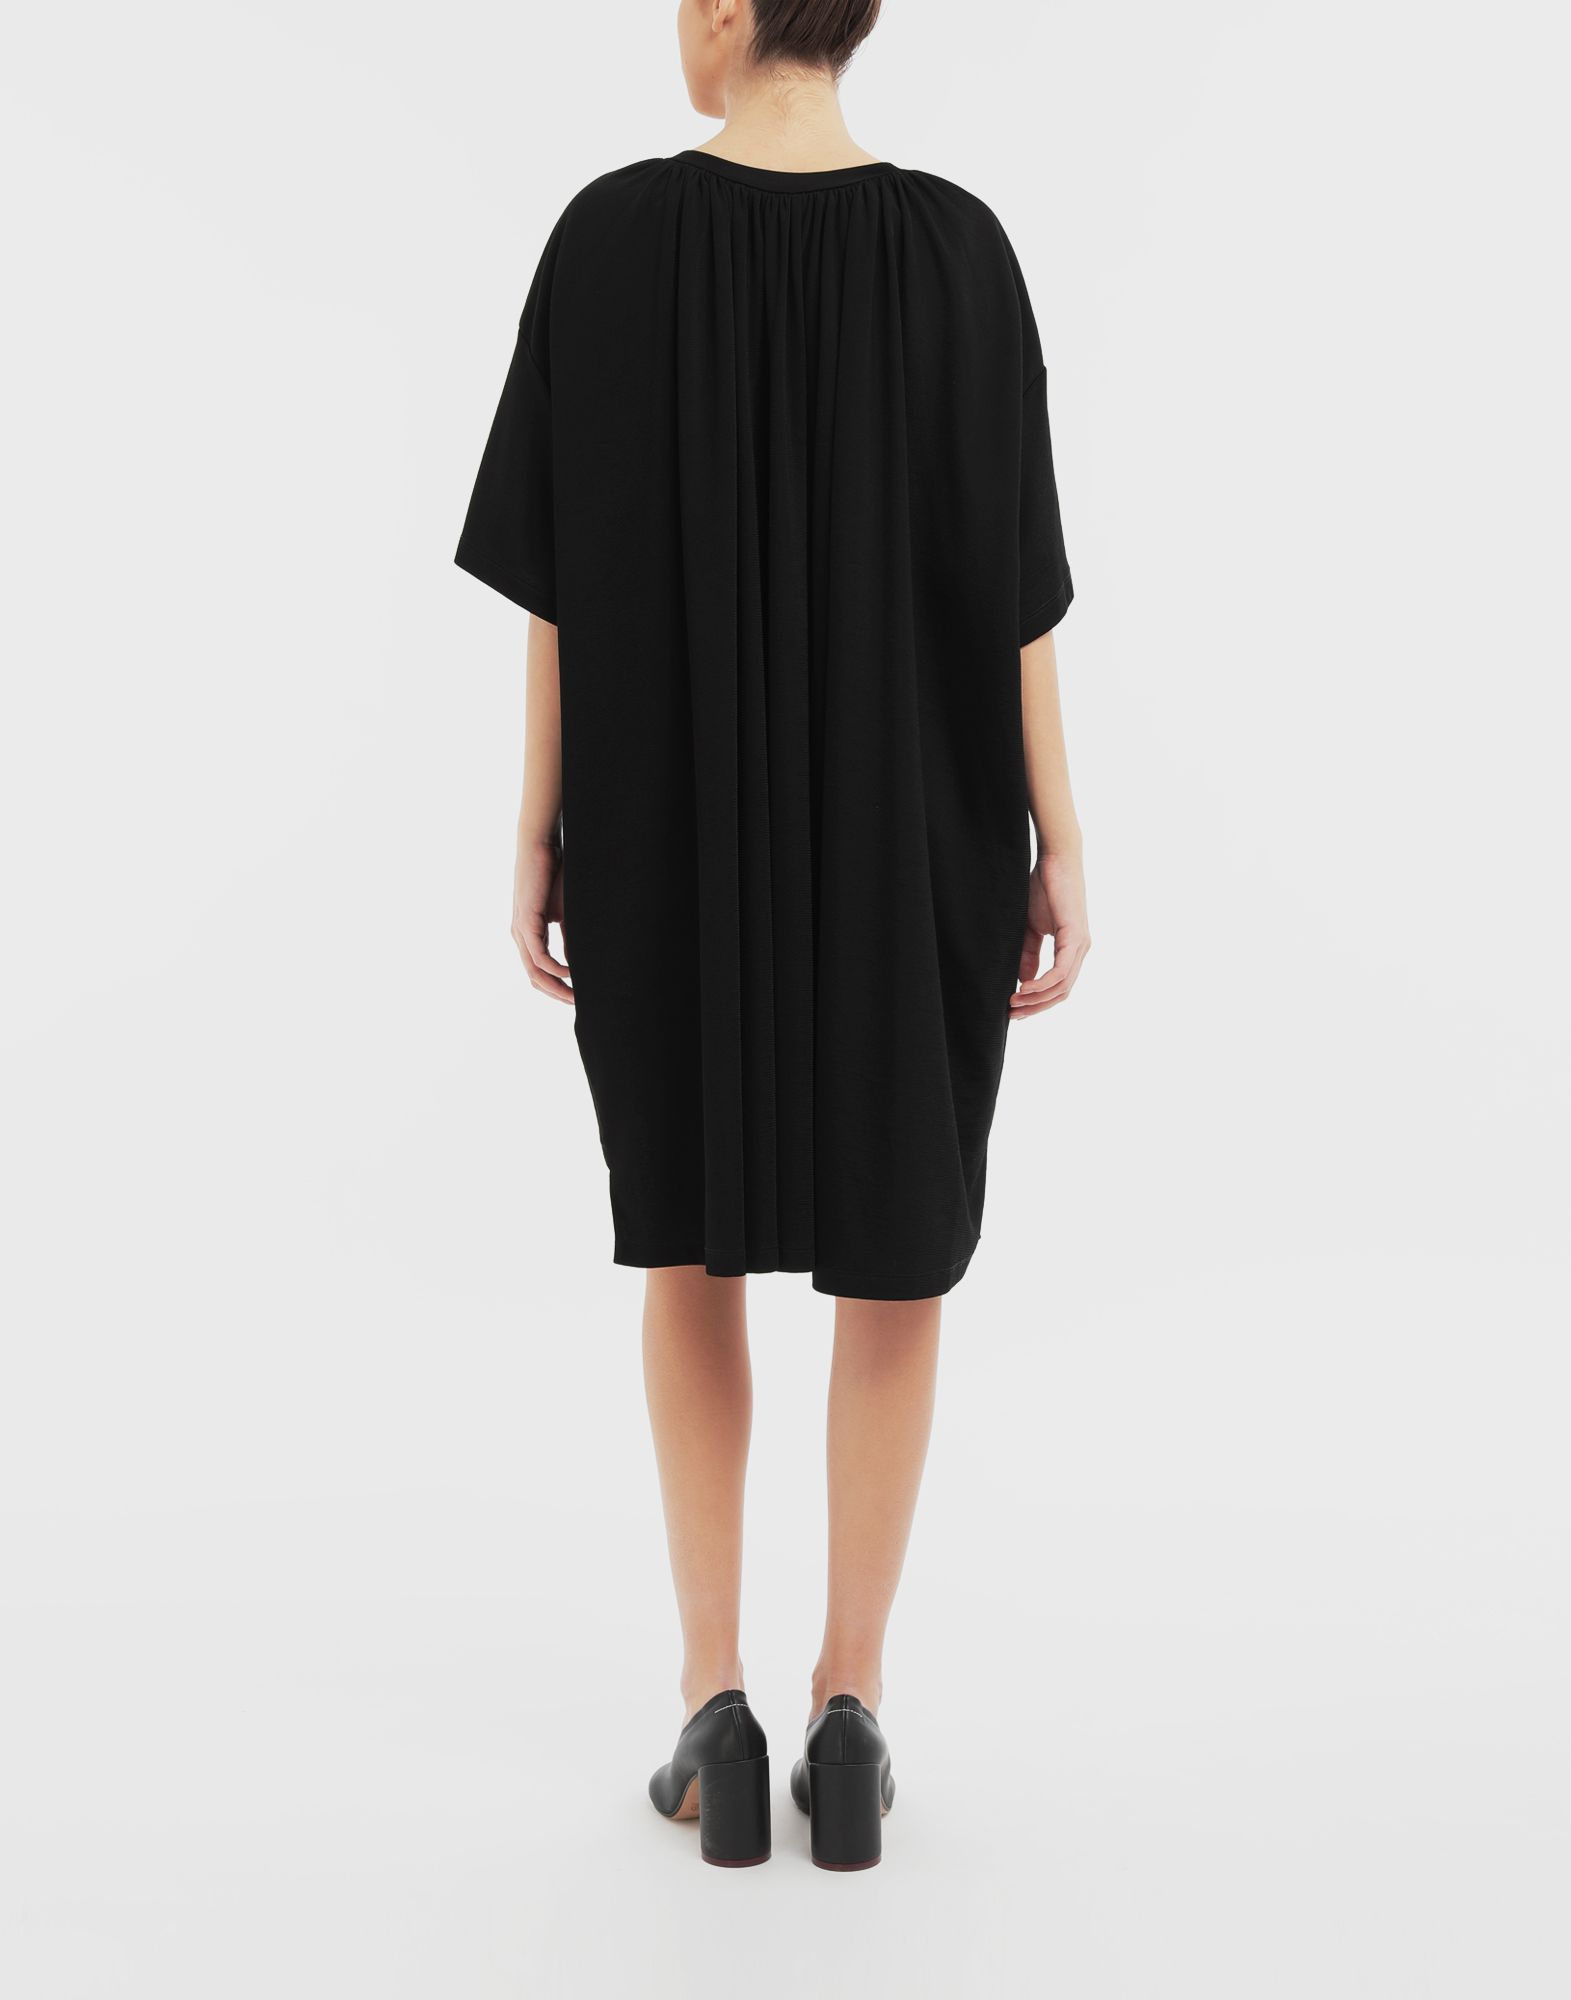 MM6 MAISON MARGIELA Dropped back T-shirt dress Short dress Woman e